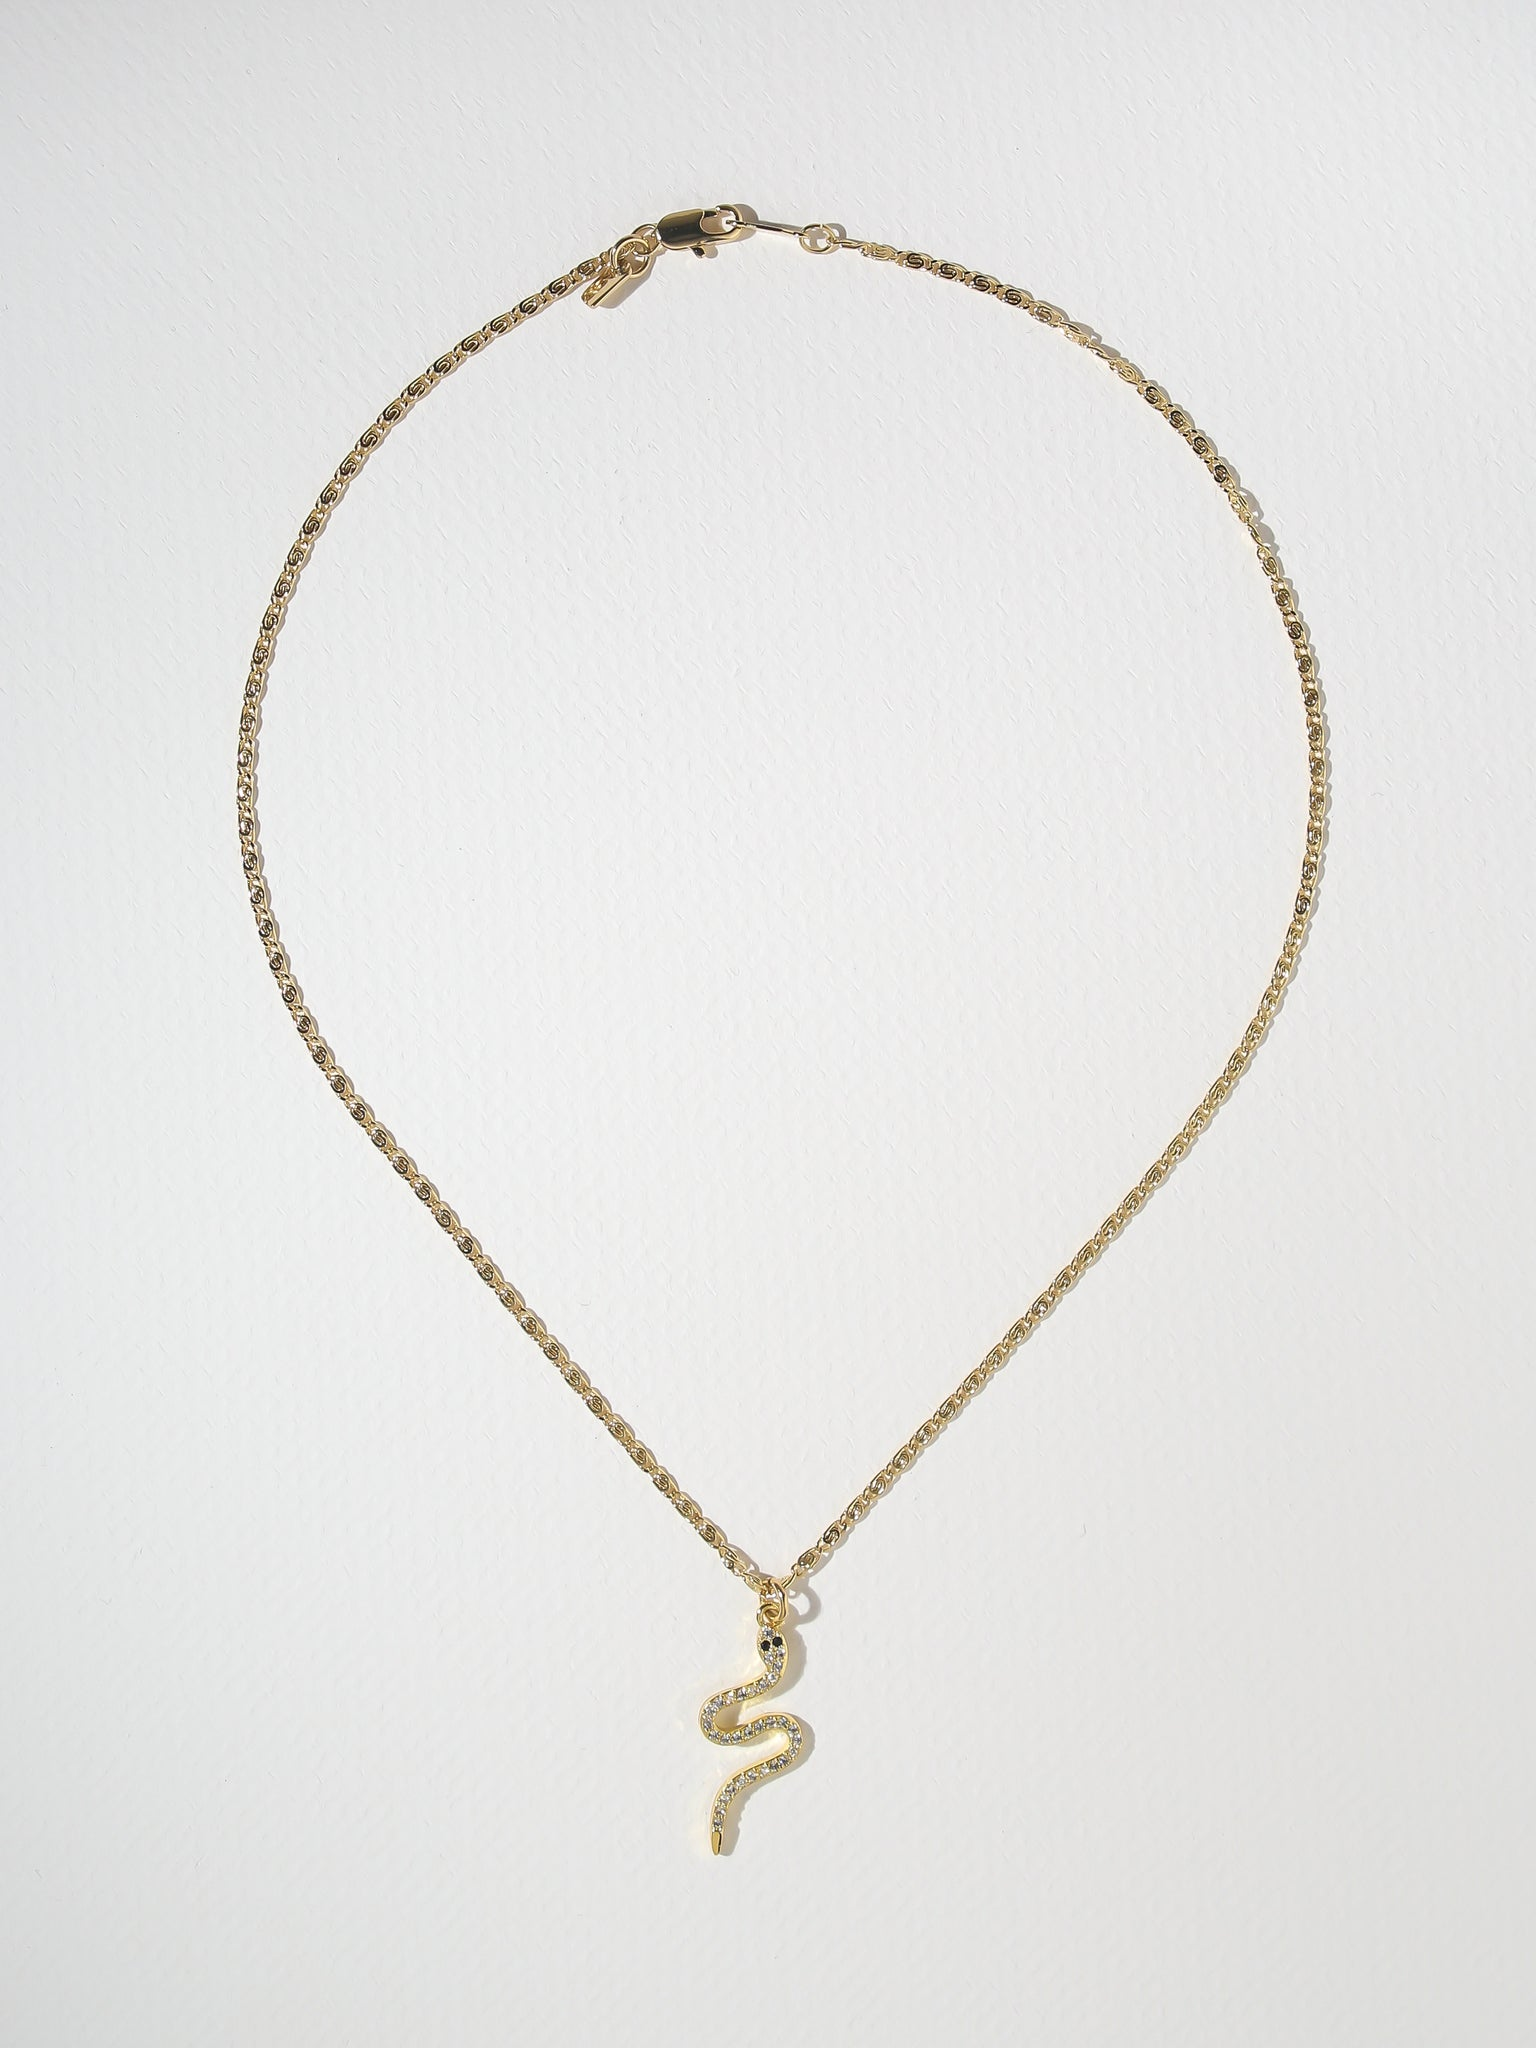 The Mara Necklace